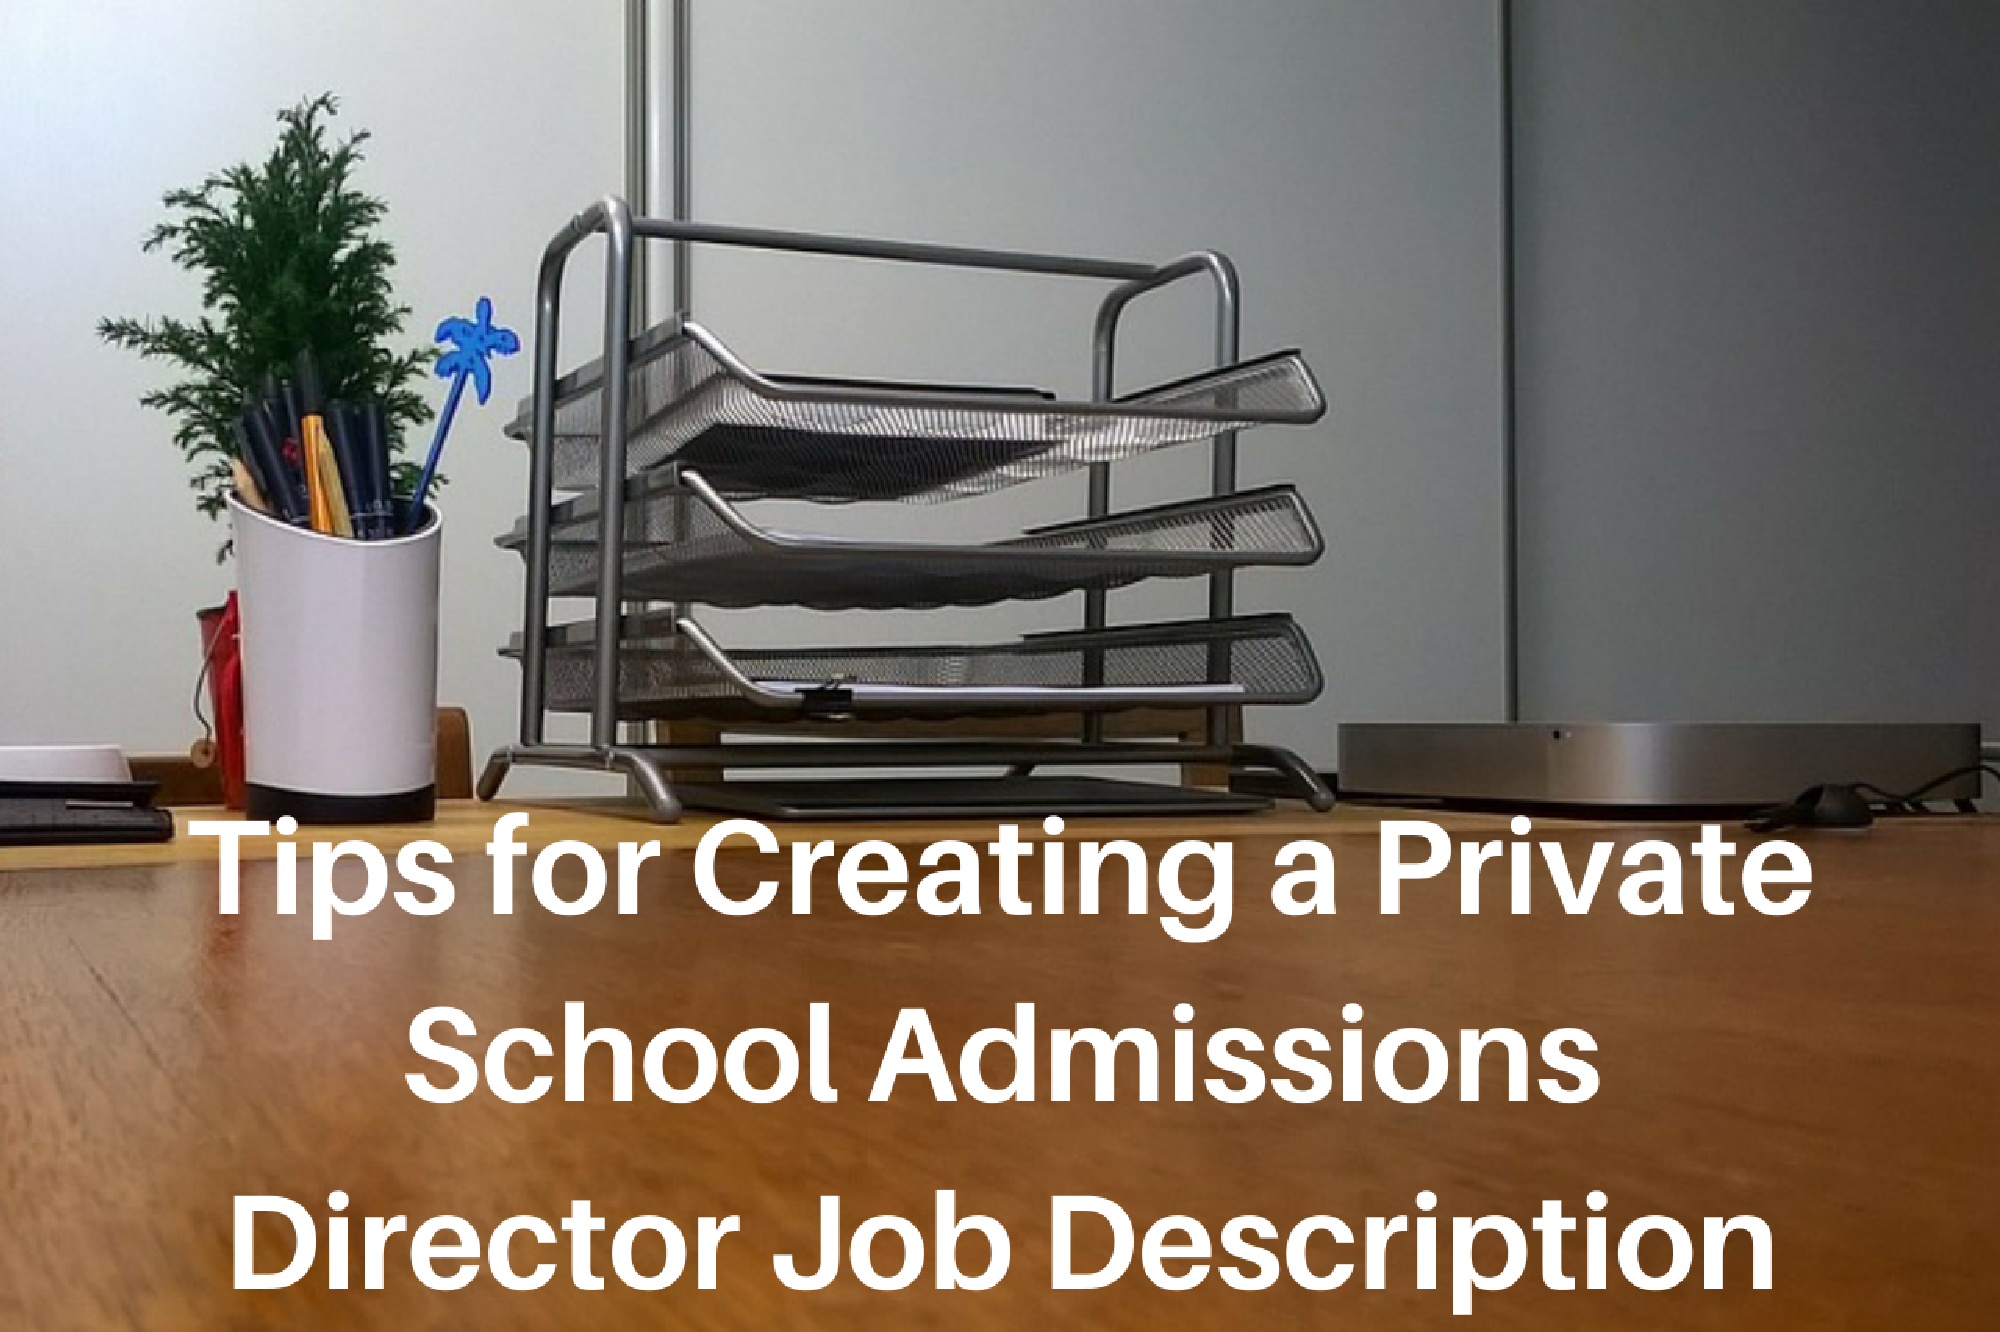 Tips for Creating a Private School Admissions Director Job Description